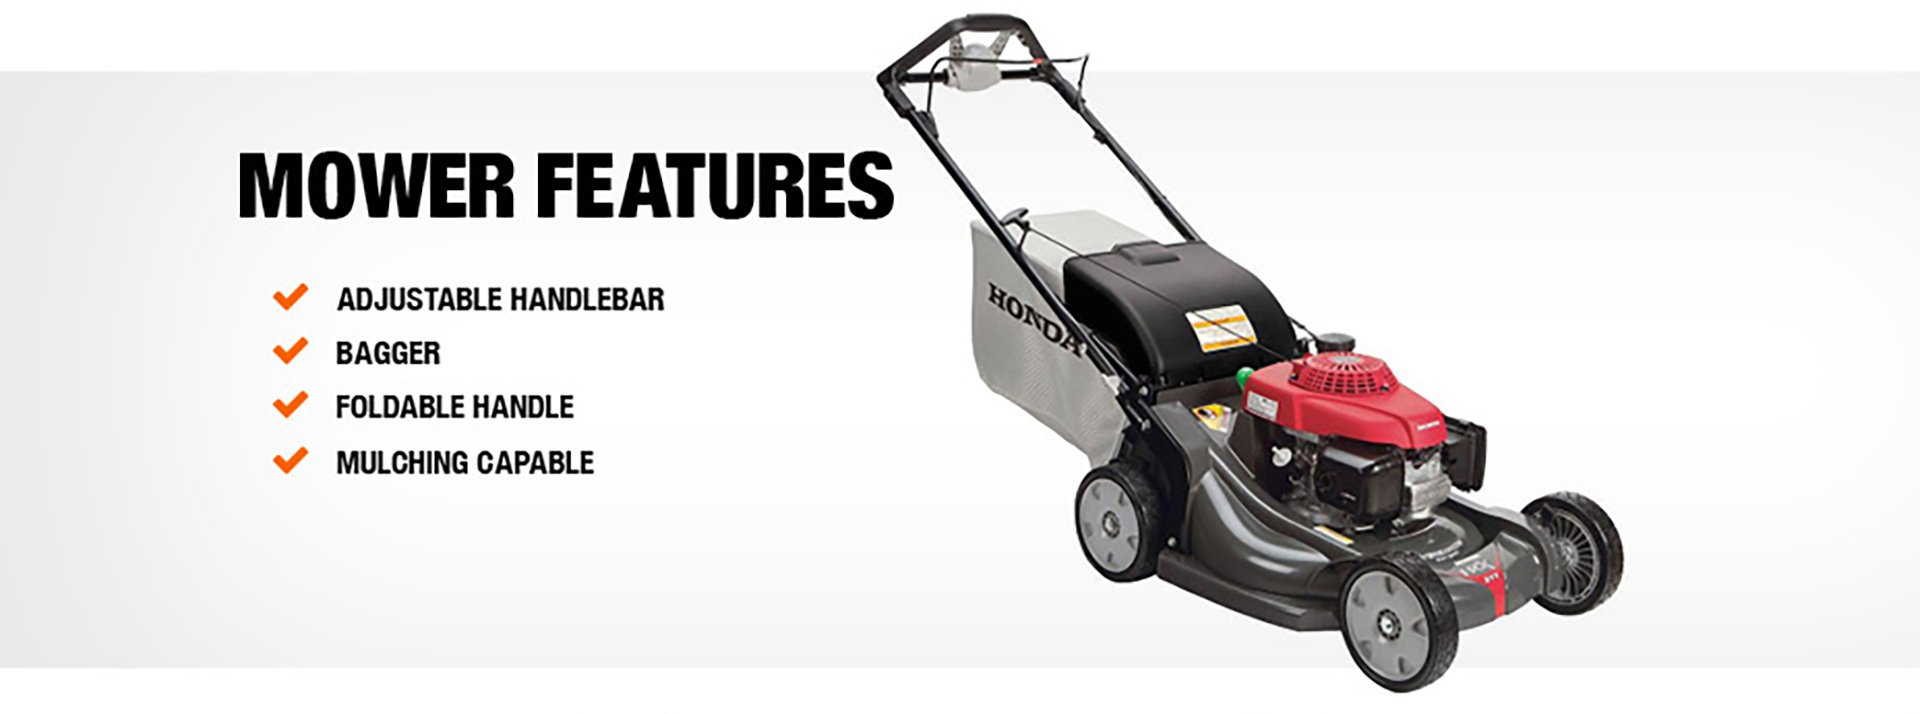 Product Overview. Mower Features